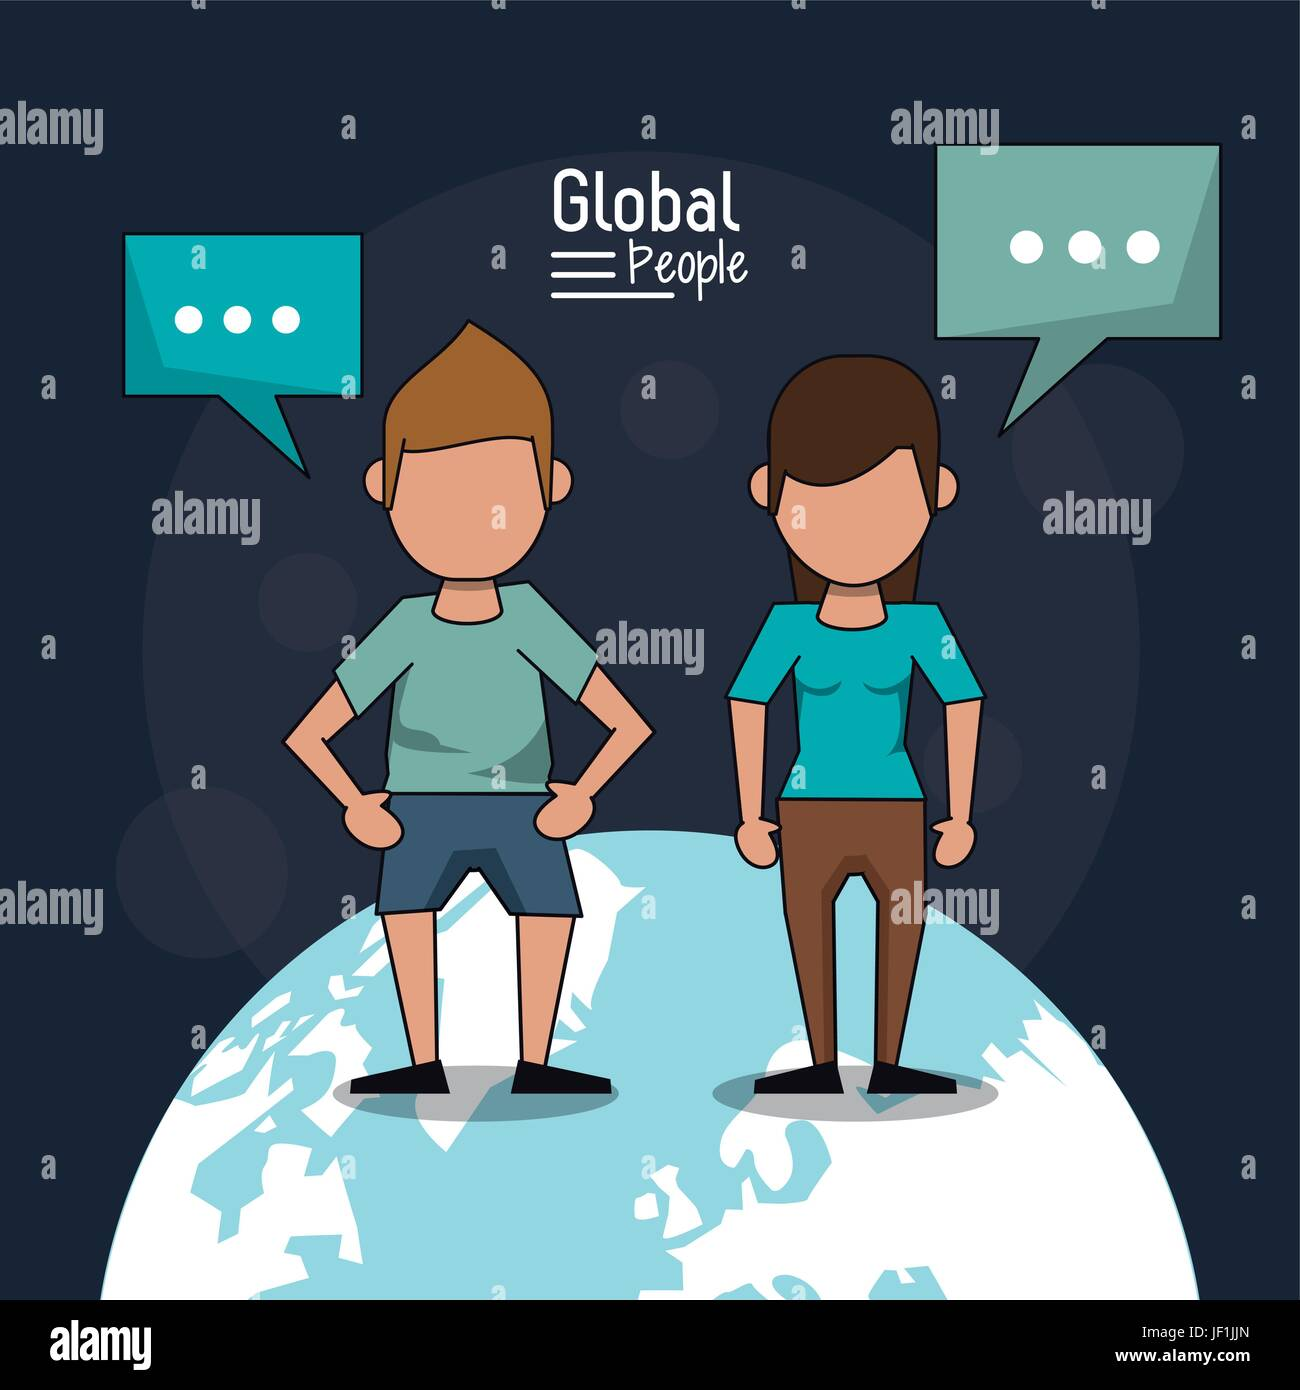 poster of global people with dark blue background with faceless couple over planet earth and text dialogues - Stock Image